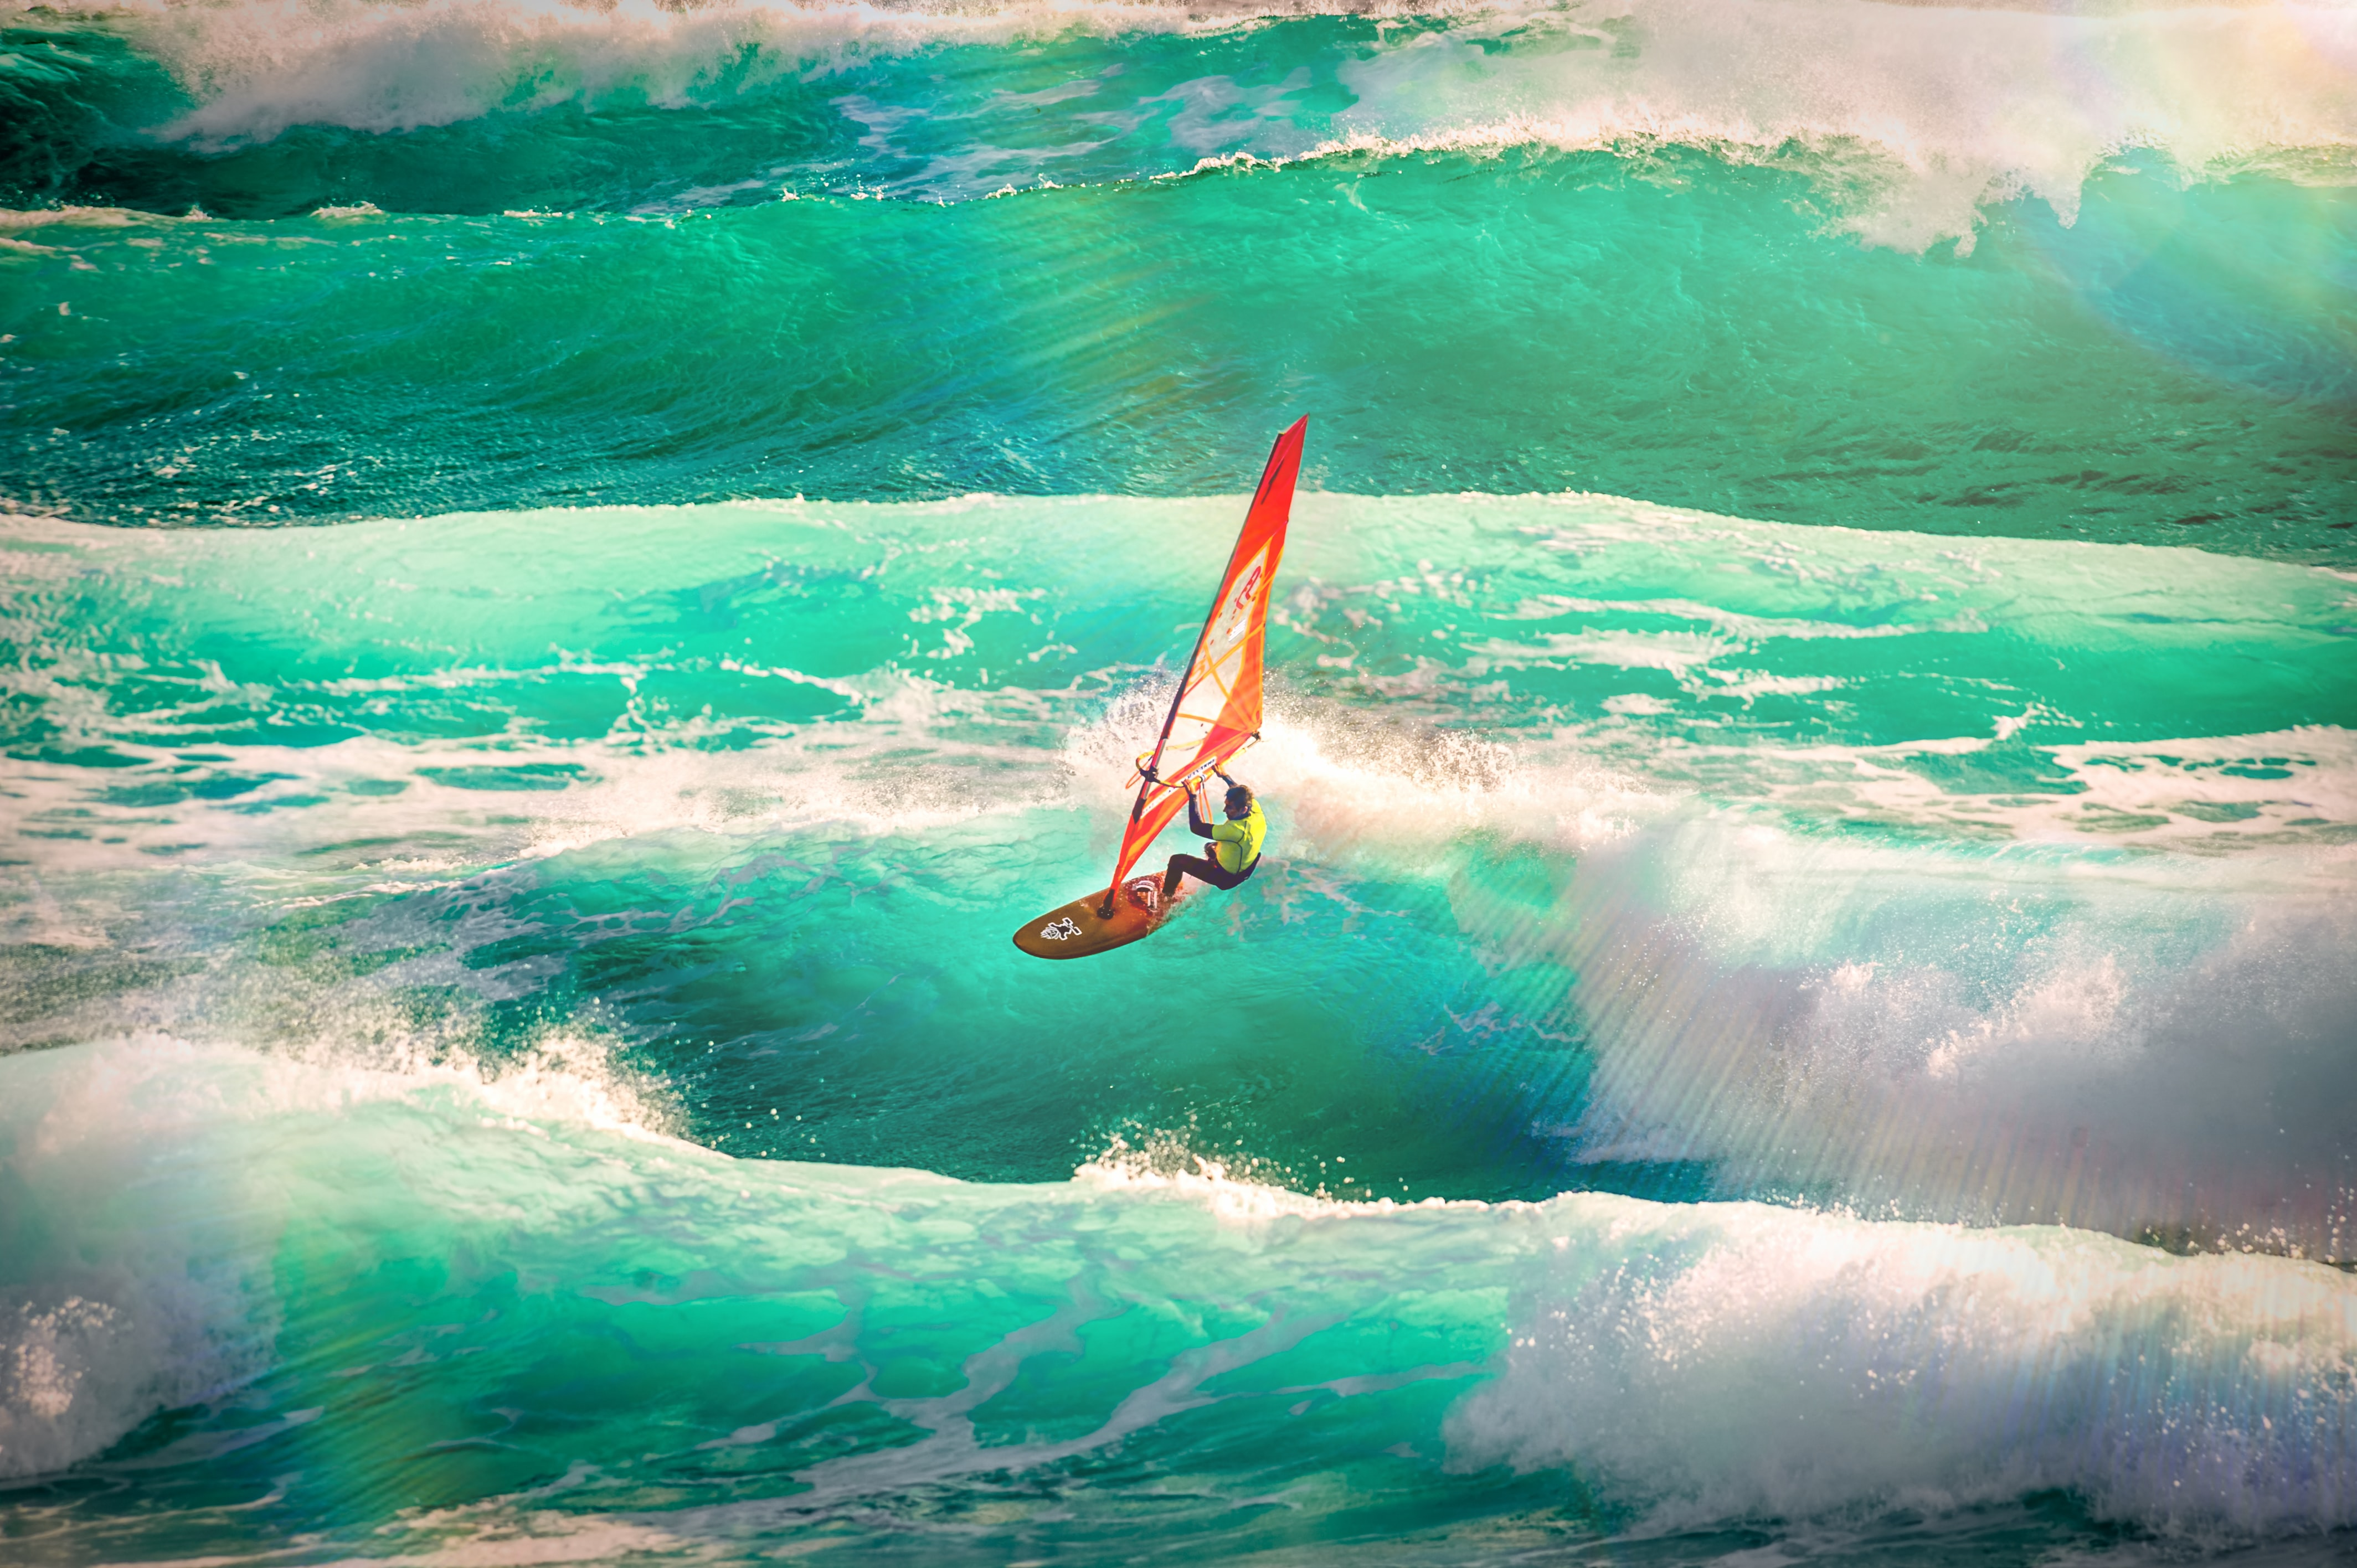 man using wind surfboard during daytime